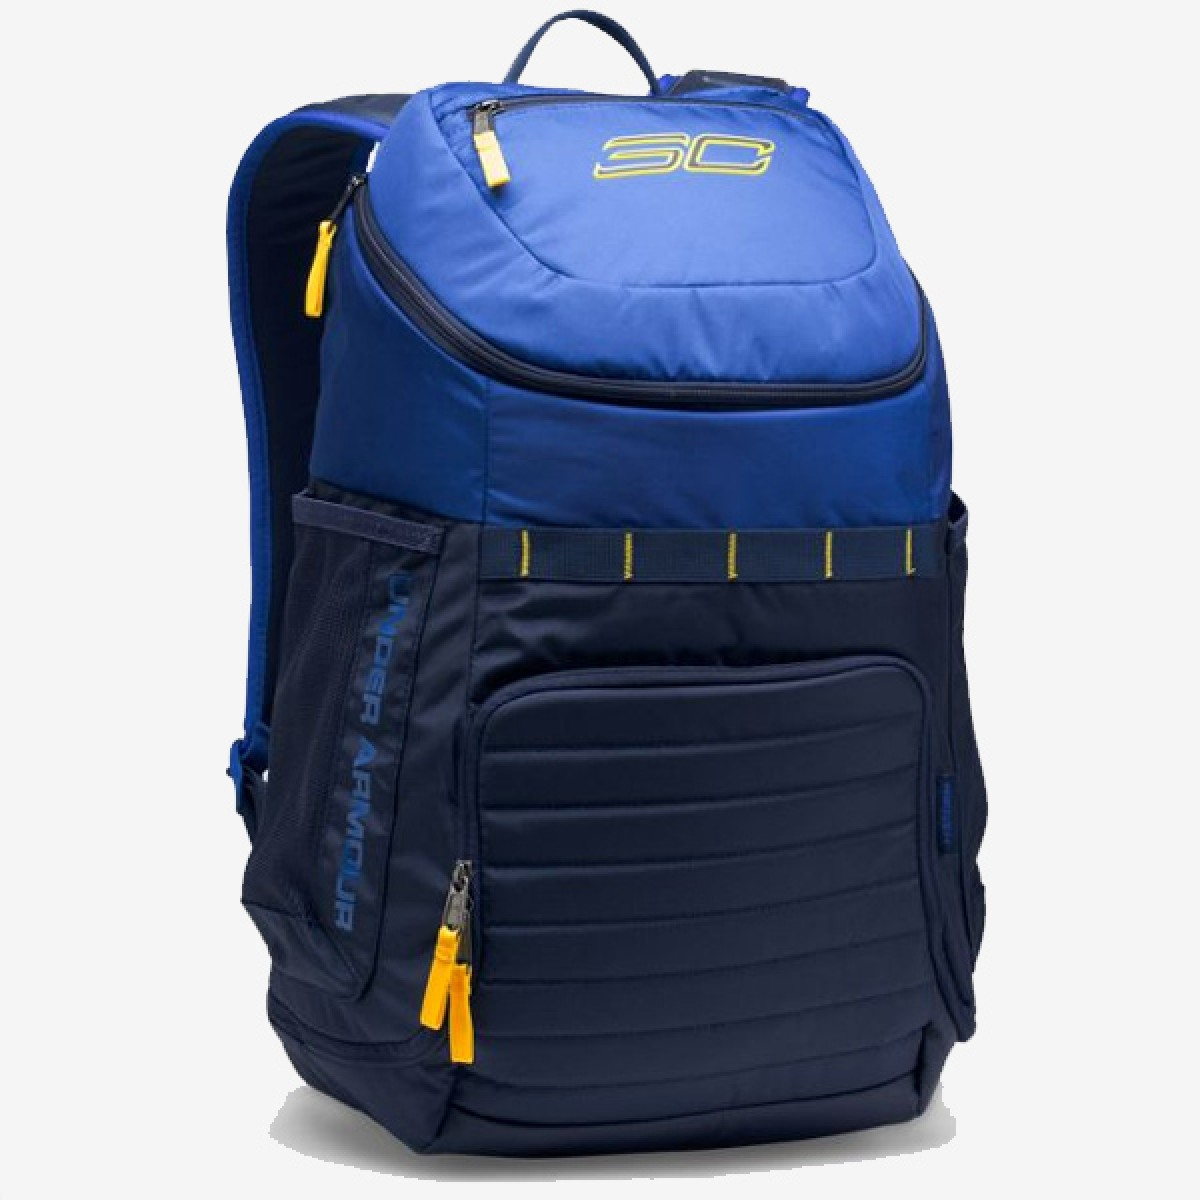 UA Backpack SC30 'Blue'